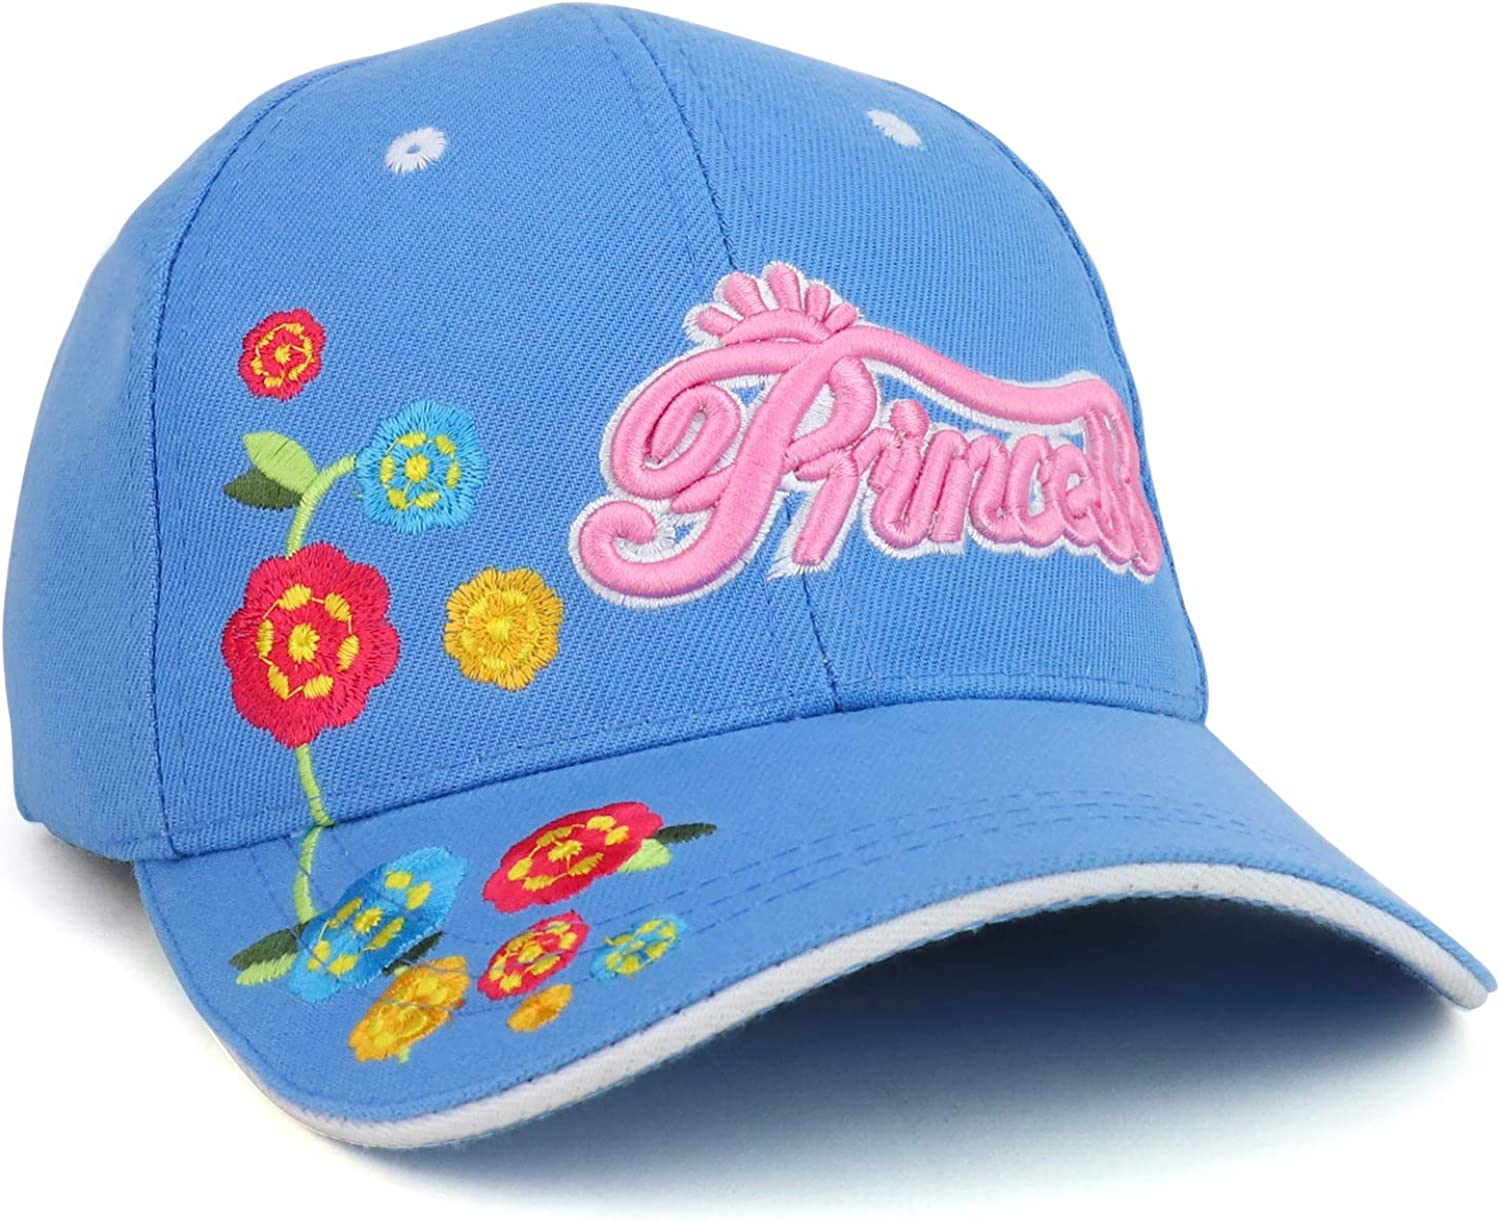 Trendy Apparel Shop Youth Size Girls Princess Flower Embroidered Structured Baseball Cap